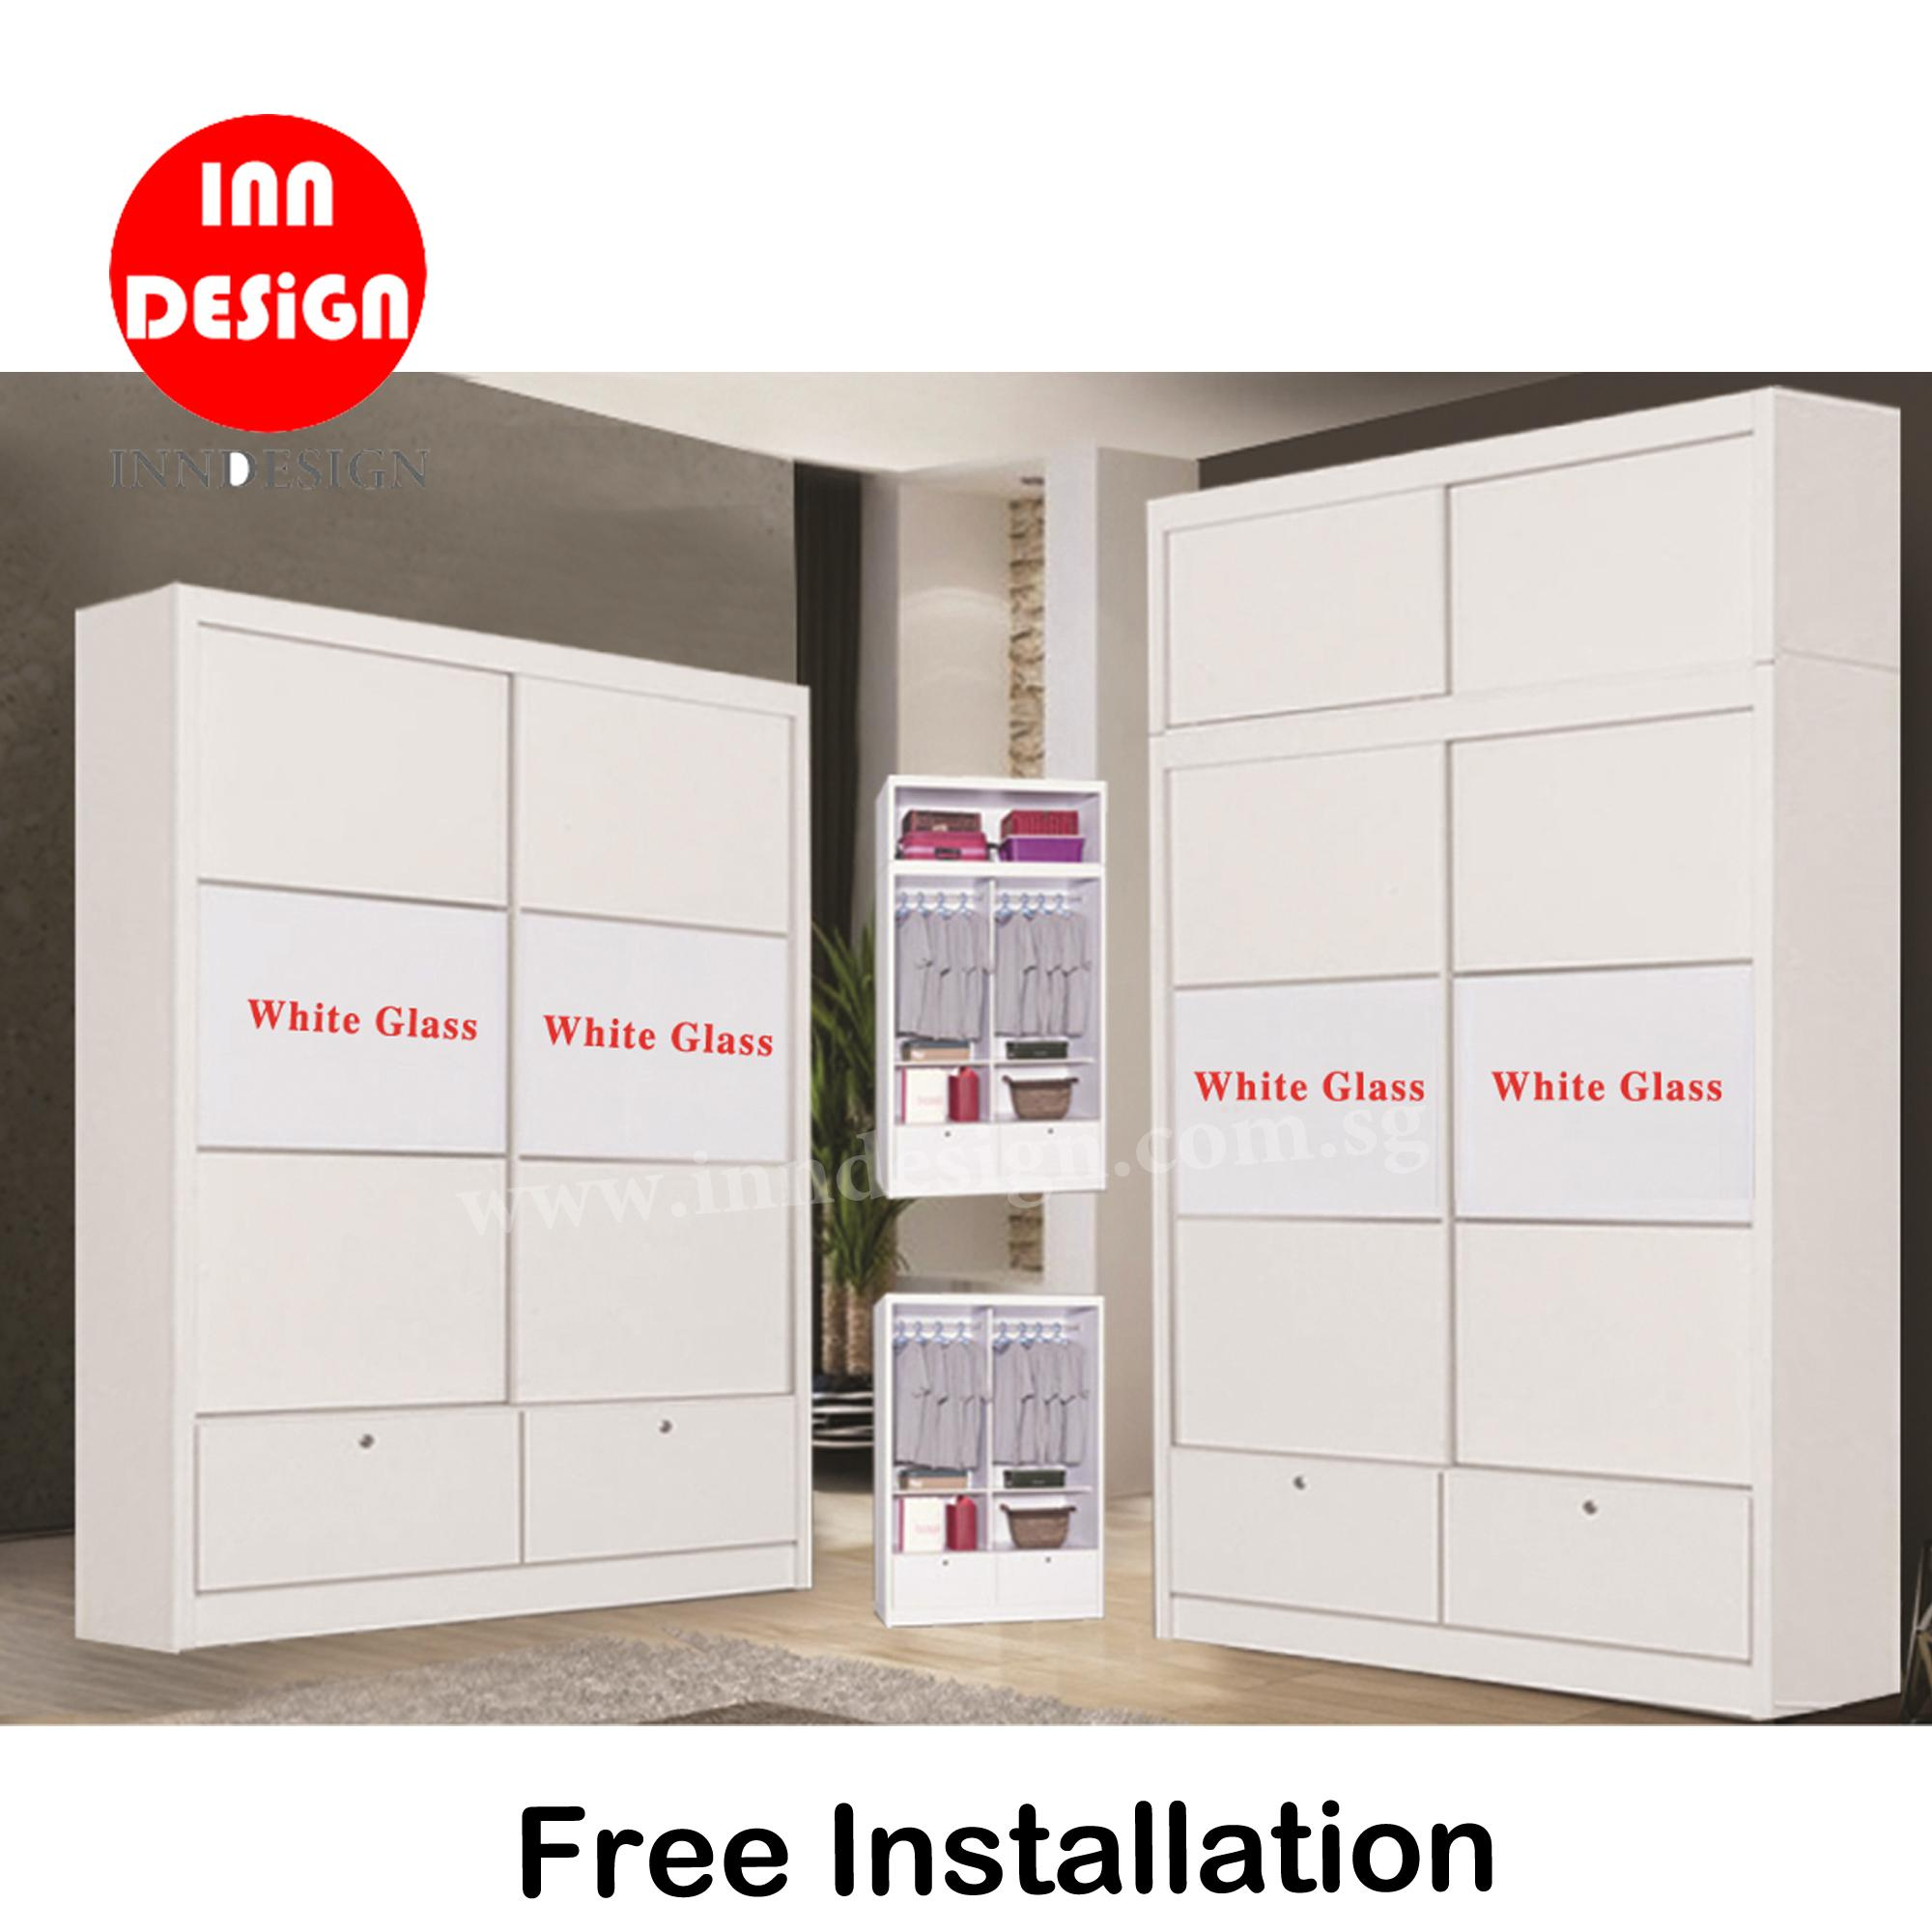 Nicky 4ft Sliding Wardrobe With/Without Top Storage (Matt White) (Free Delivery and Installation)